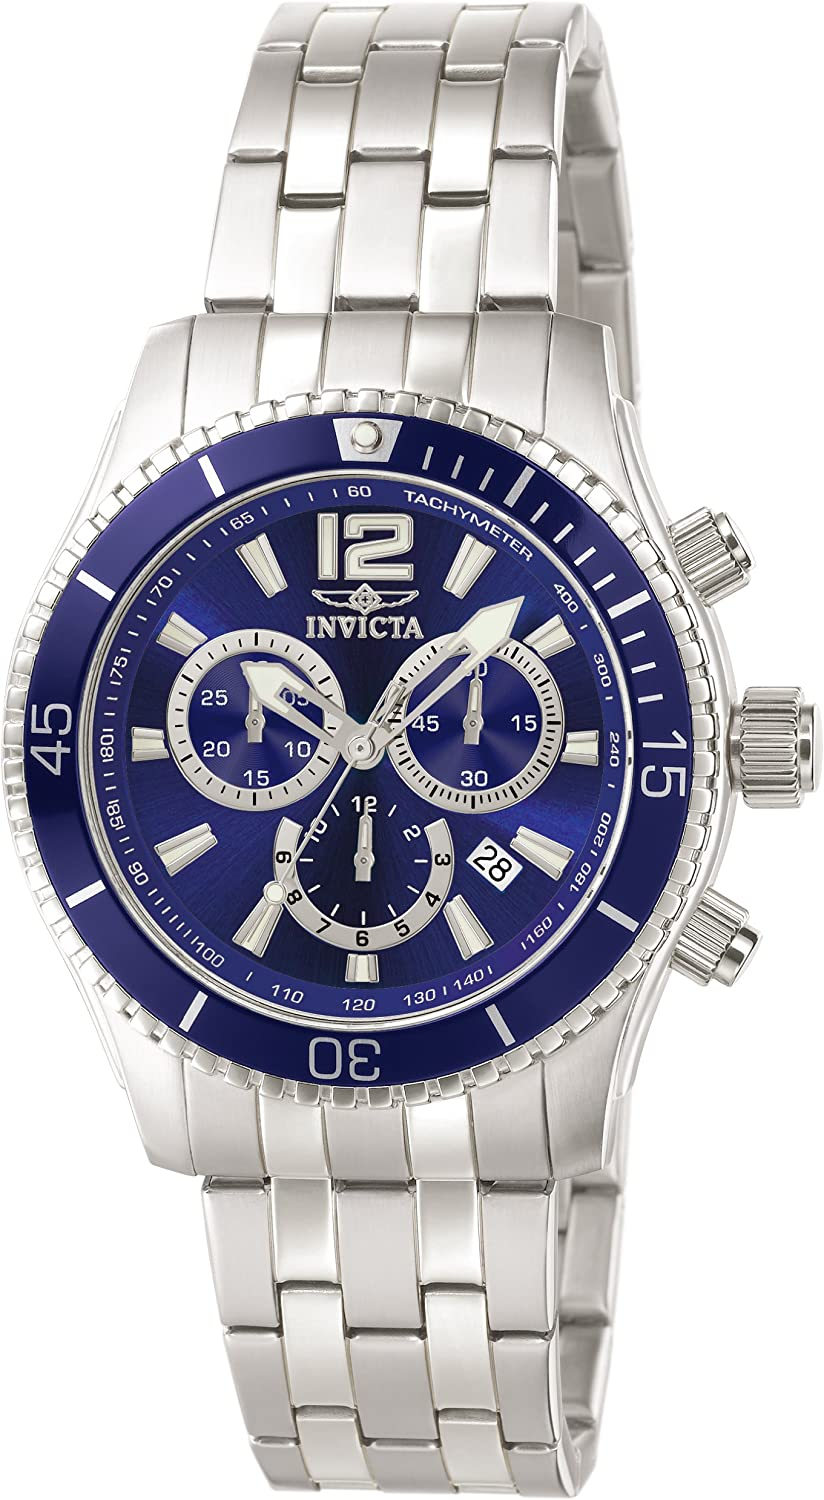 Invicta Men s Specialty Collection Chronograph Stainless Steel Watch 0620